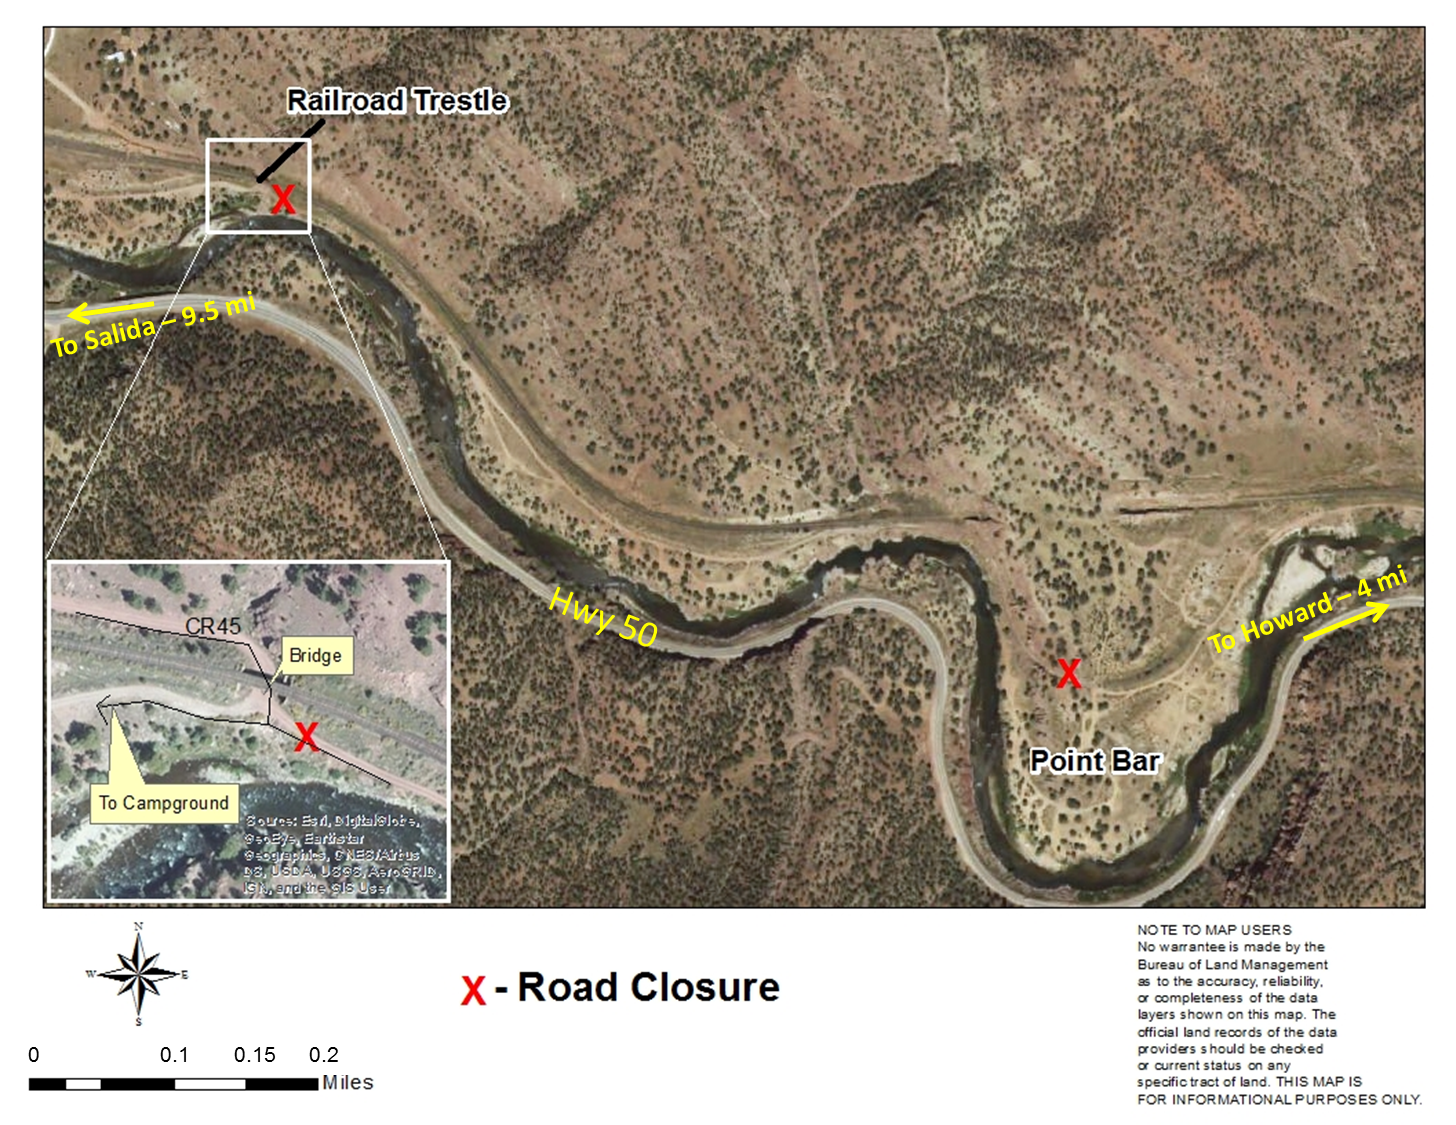 BLM temporarily closes Point Barr road